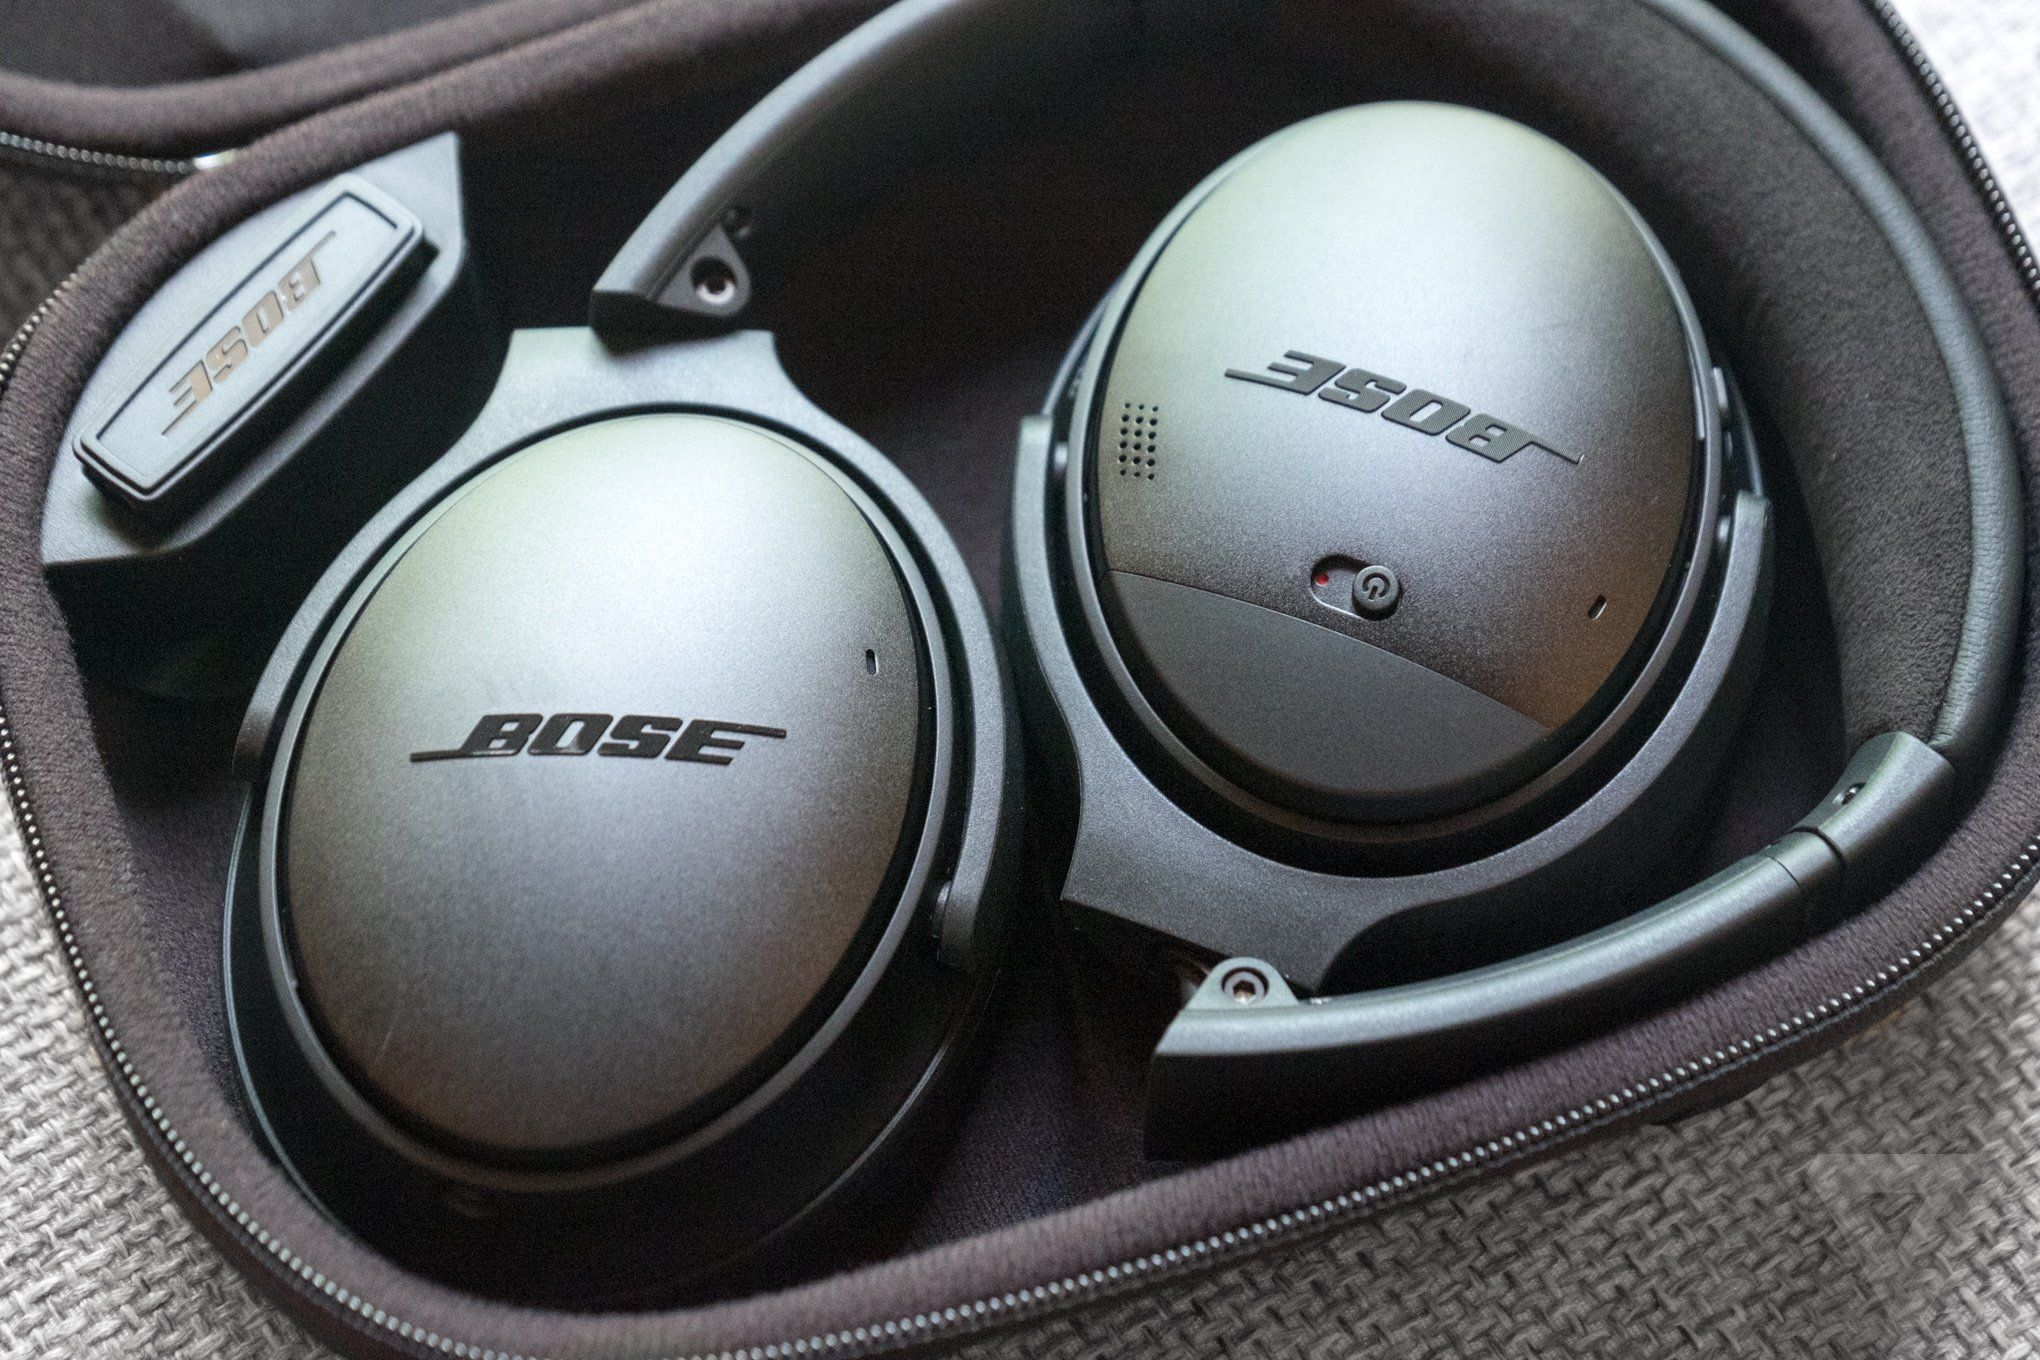 Bose sued over spying headphones